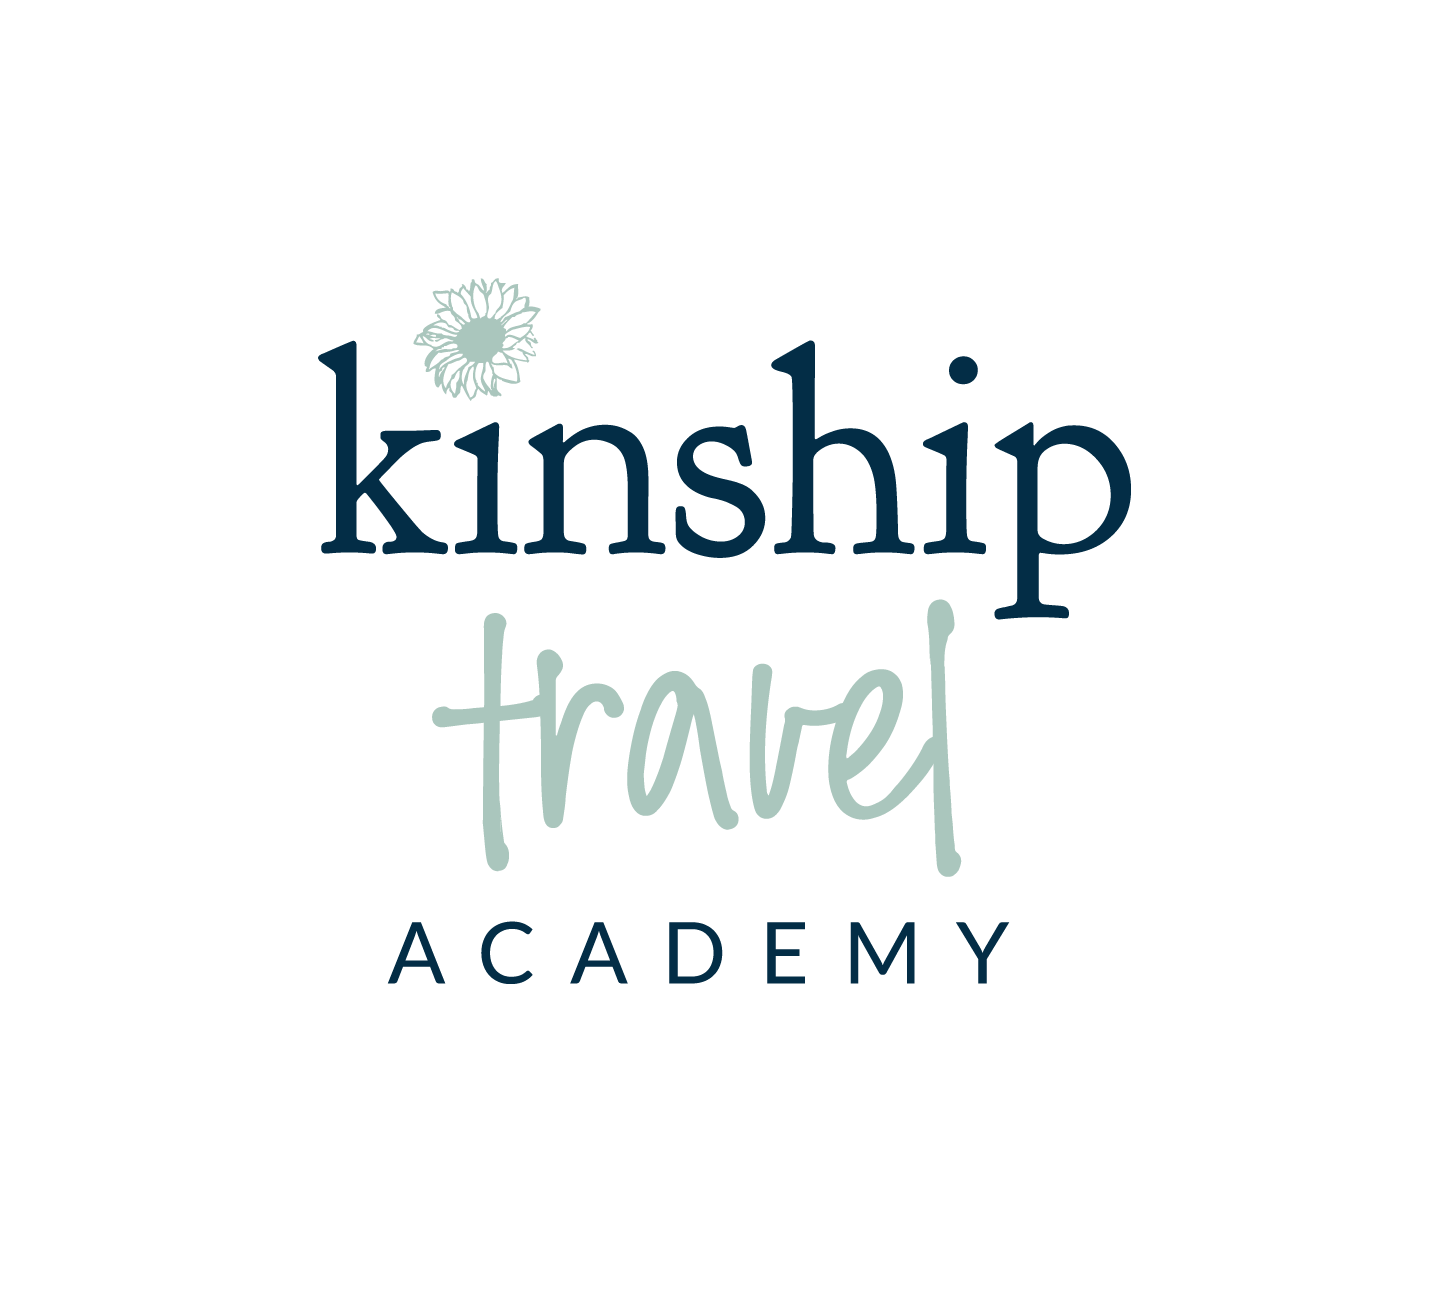 Travel Biz CEO by Kinship Travel Academy